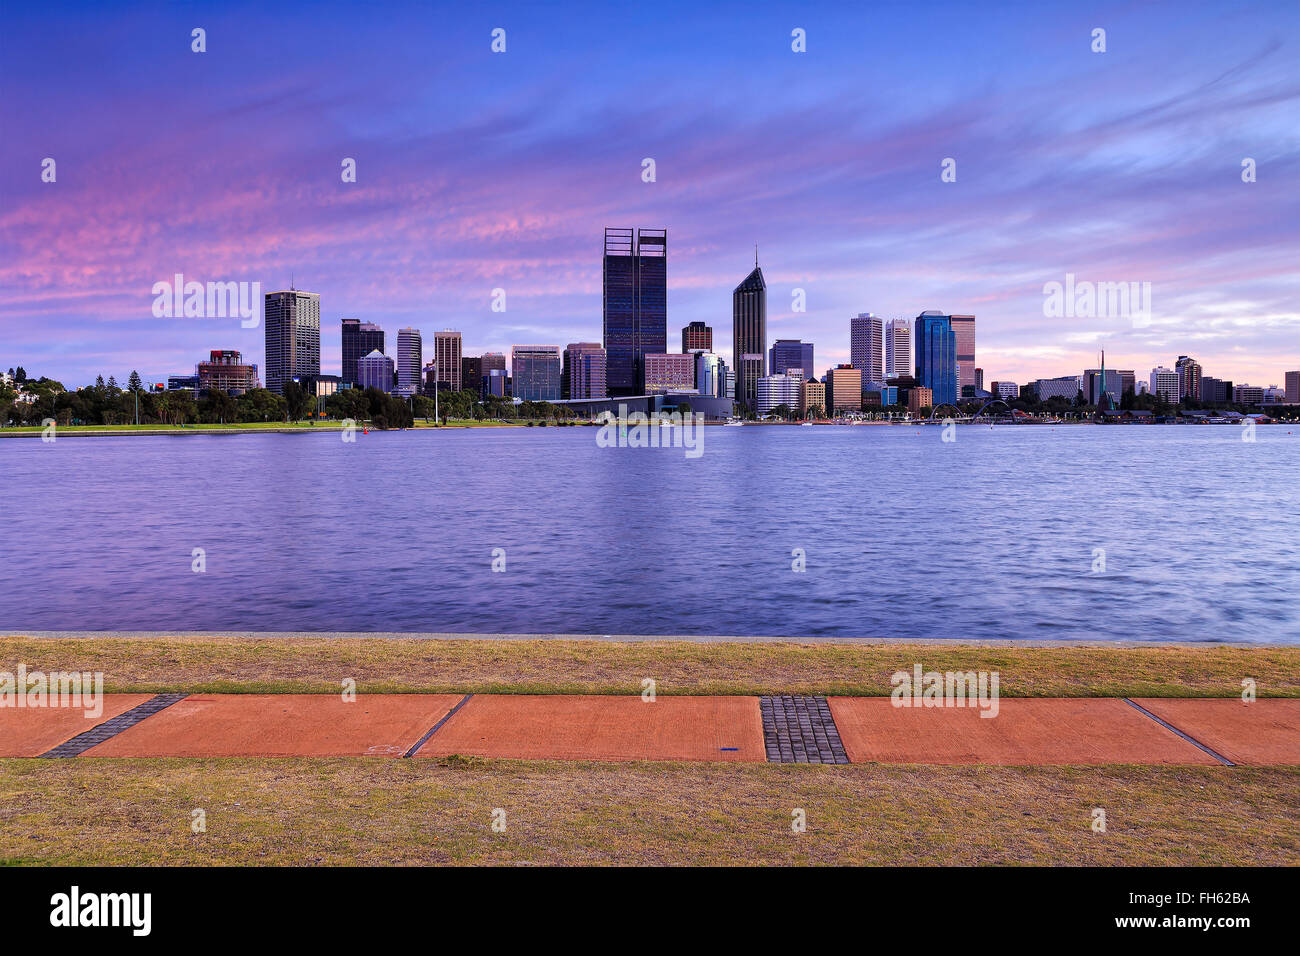 panoramic view of skyscrapers in Perth, Western Australia, across Swan river at sunrise. Walking trail in background. - Stock Image